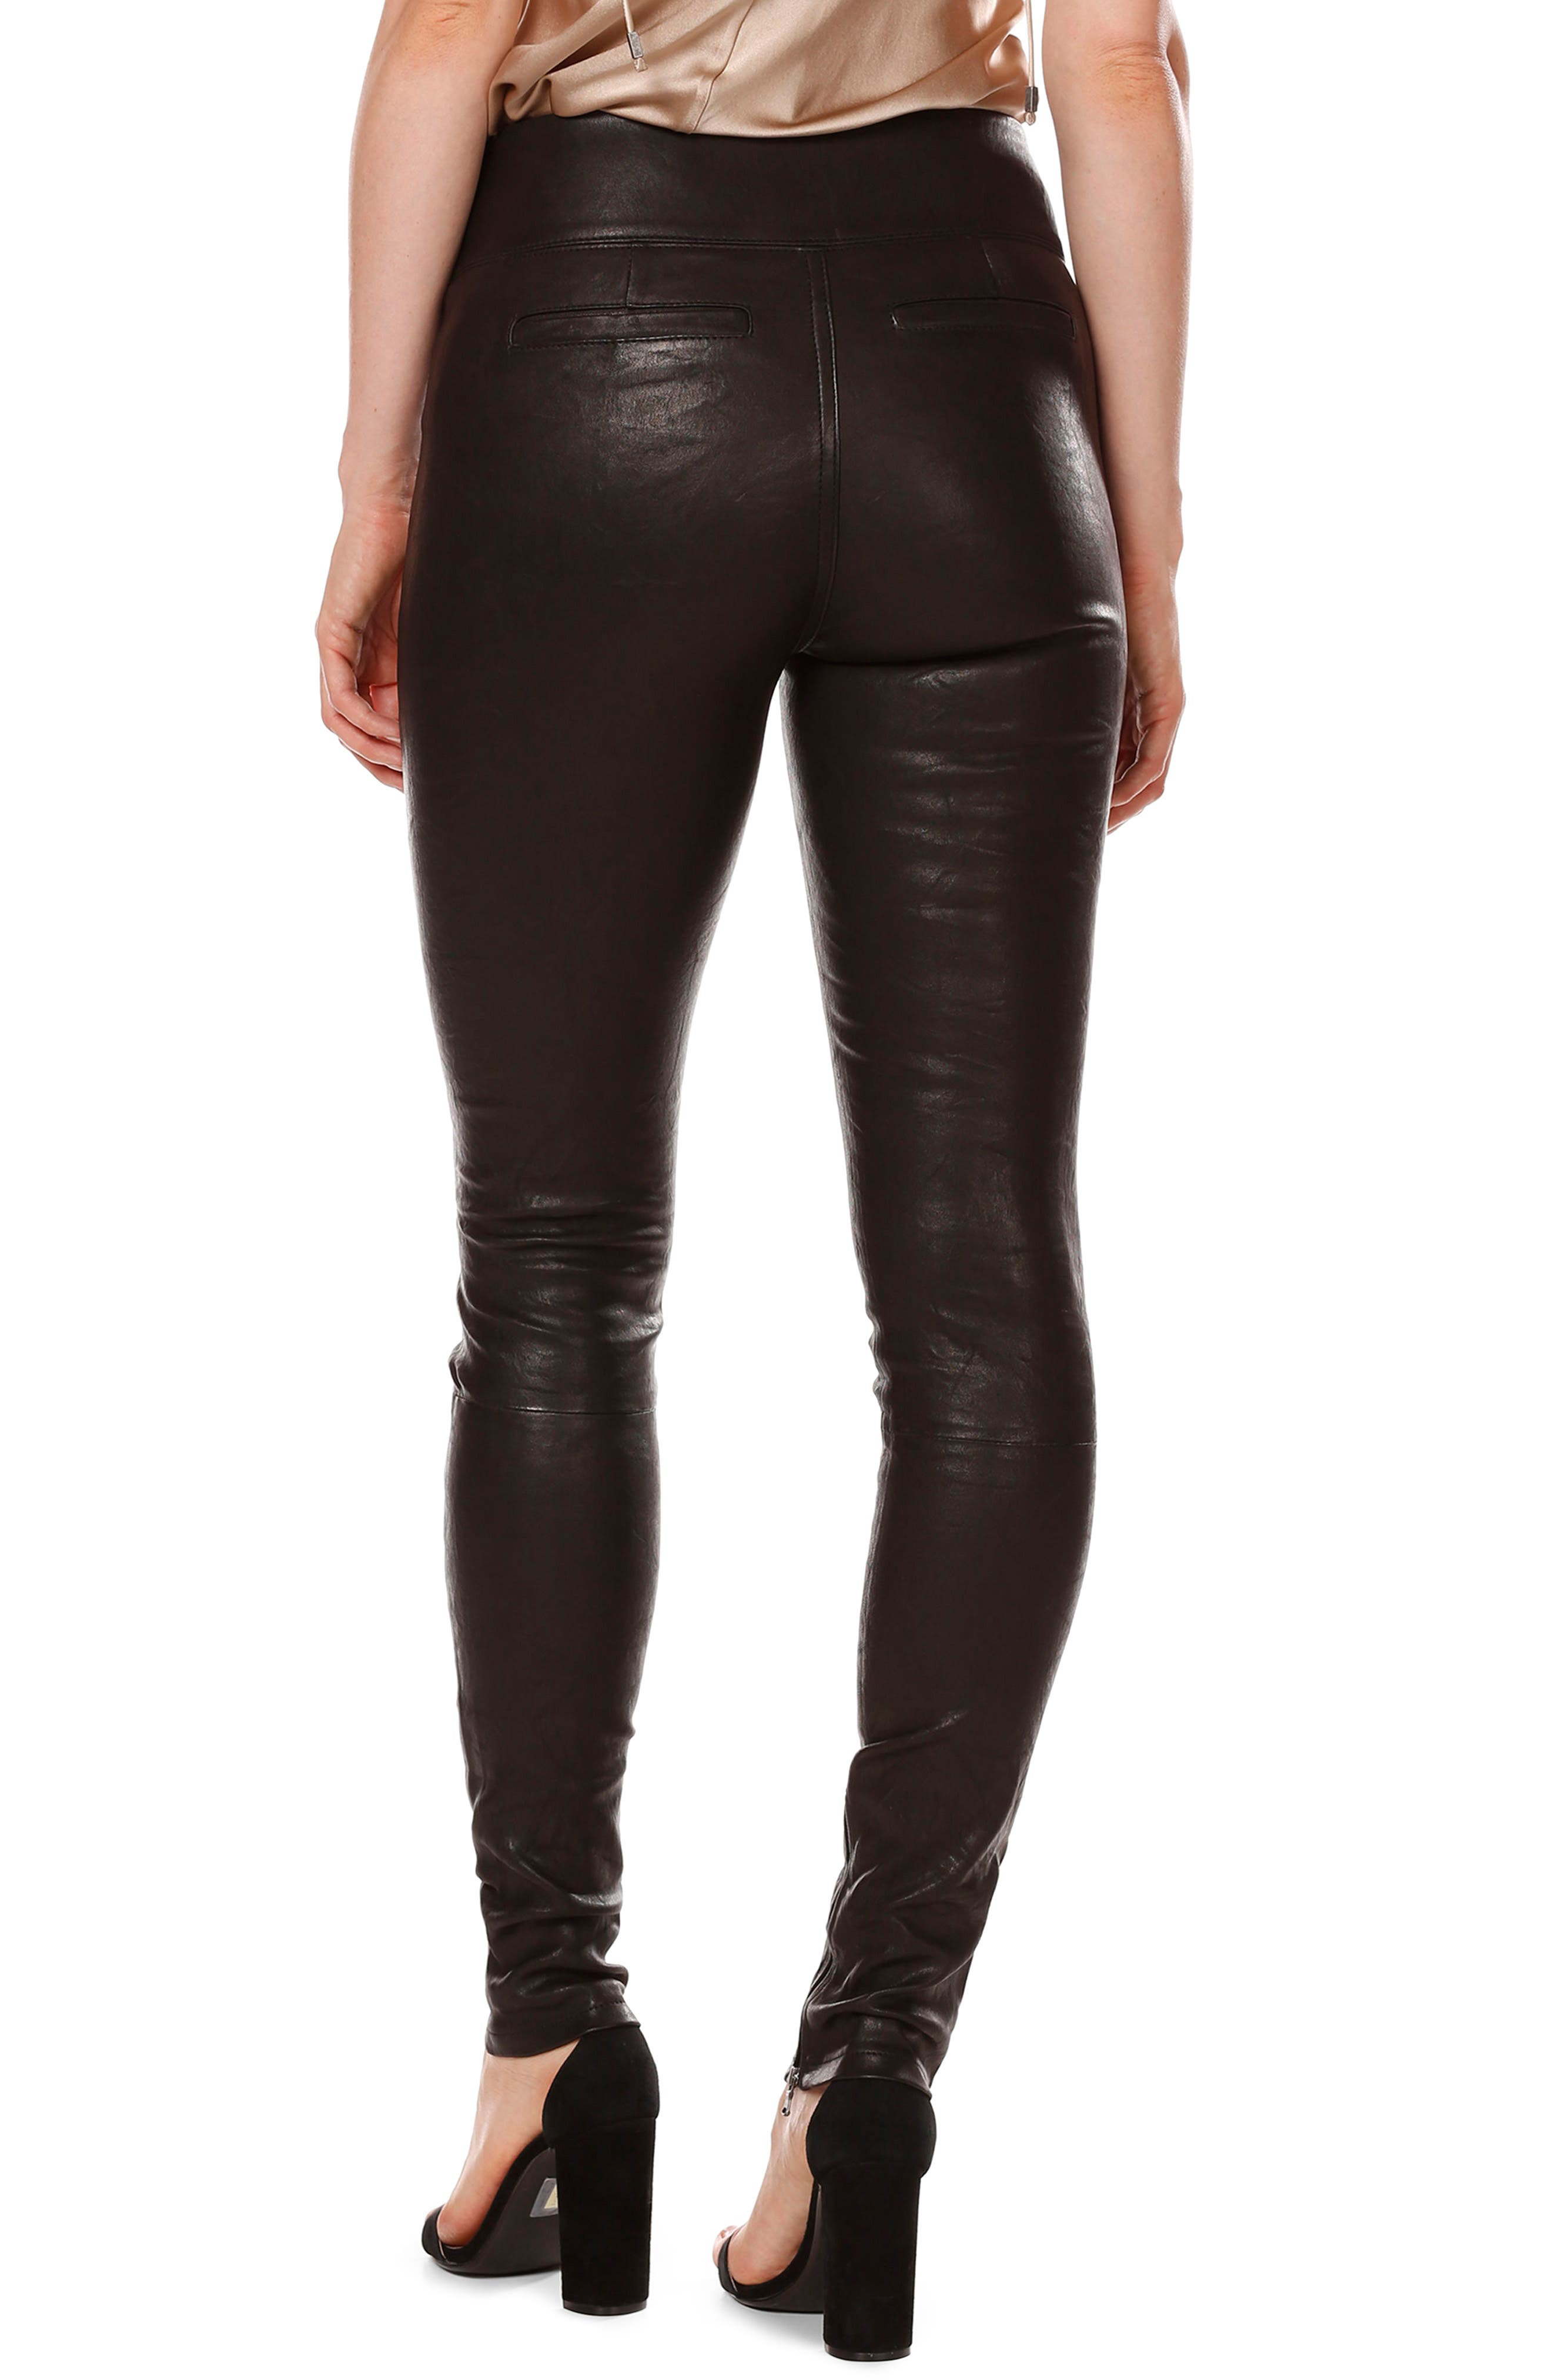 Rosie HW x PAIGE Ellery Ankle Zip Leather Pants,                             Alternate thumbnail 3, color,                             Black Leather